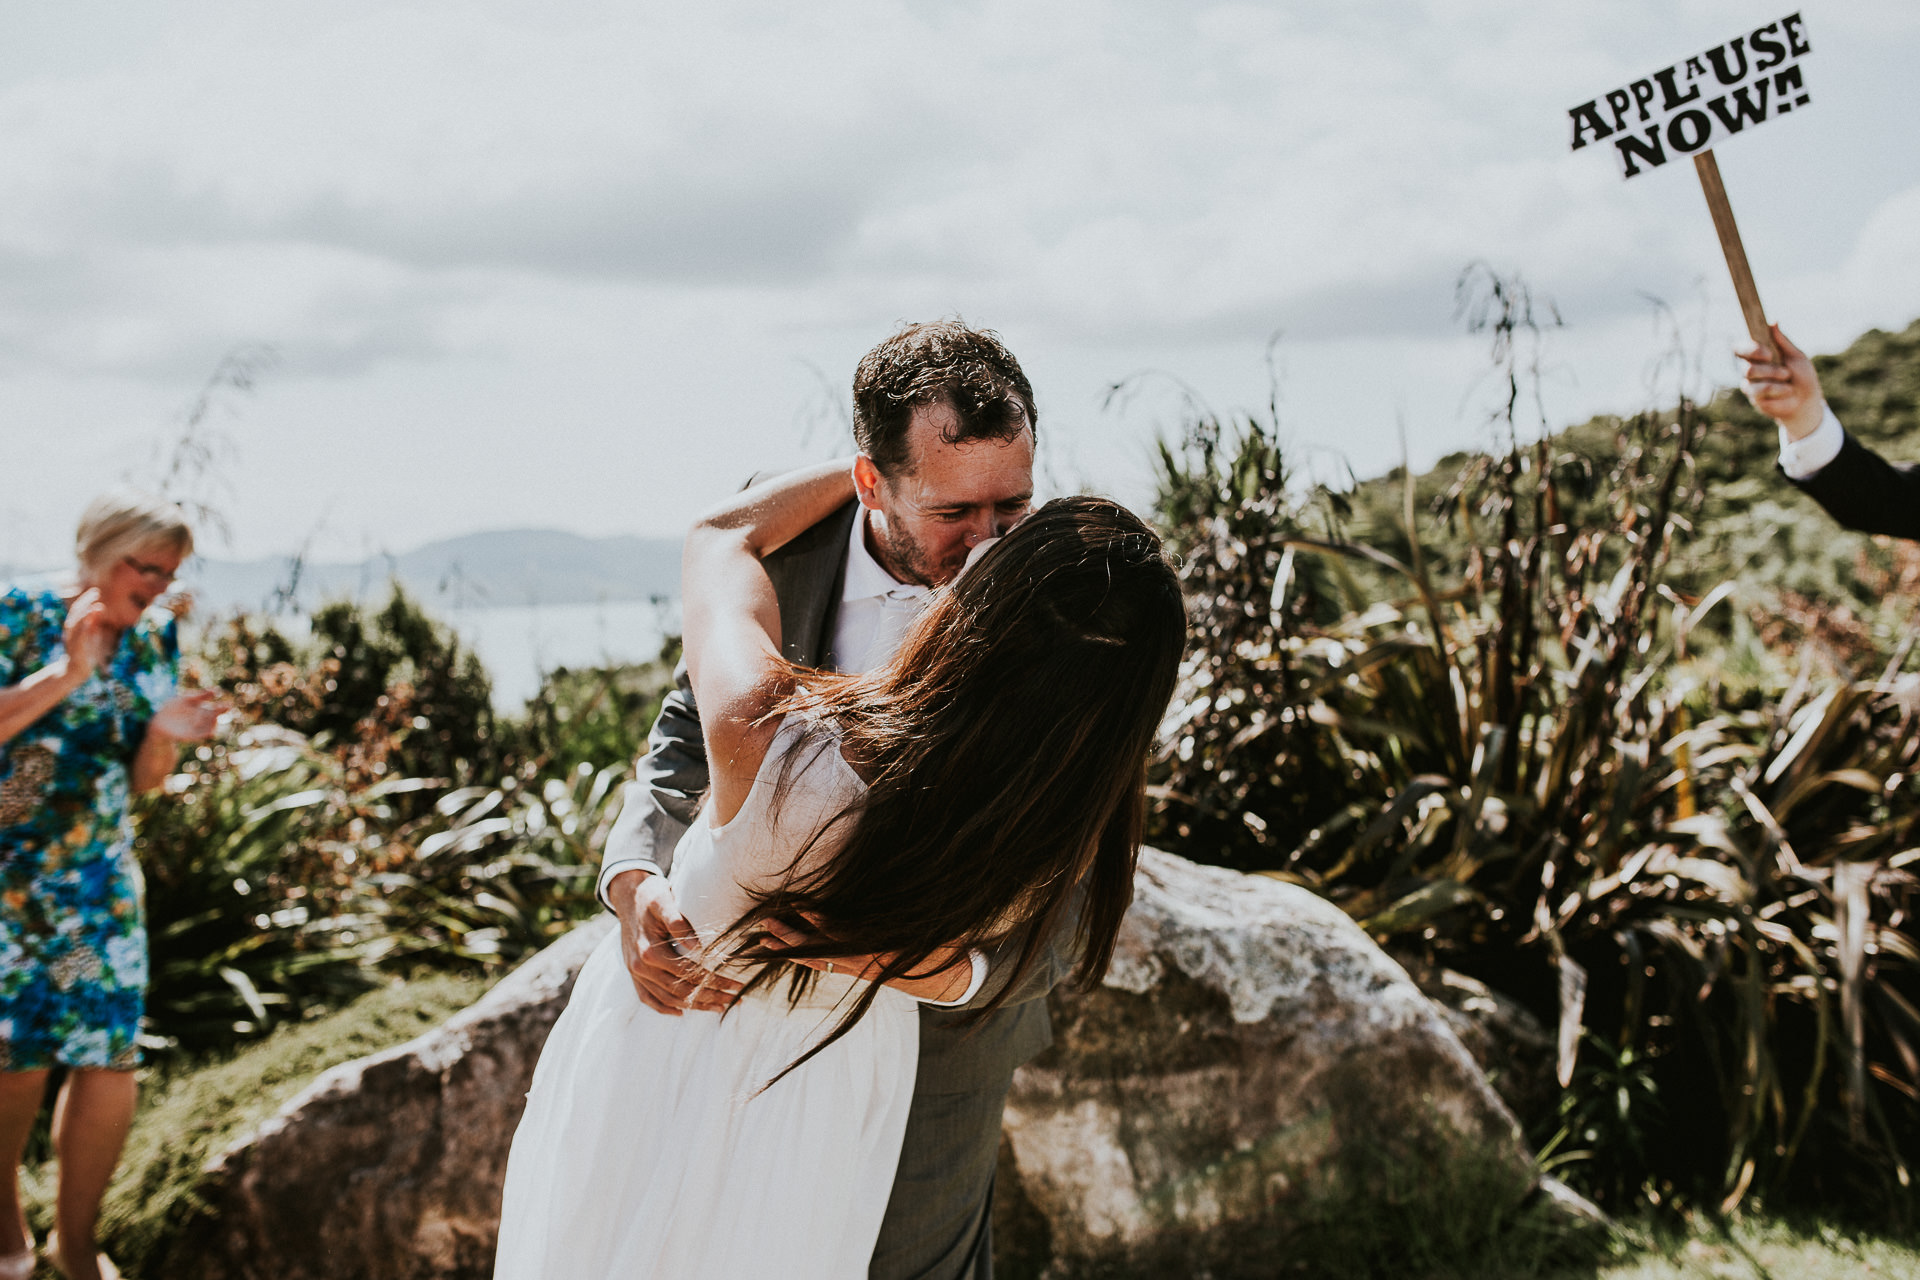 Coromandel wedding photography, hahei wedding, new zealand wedding photography, destination wedding photographer, ayesha photography, bride and groom, beach wedding